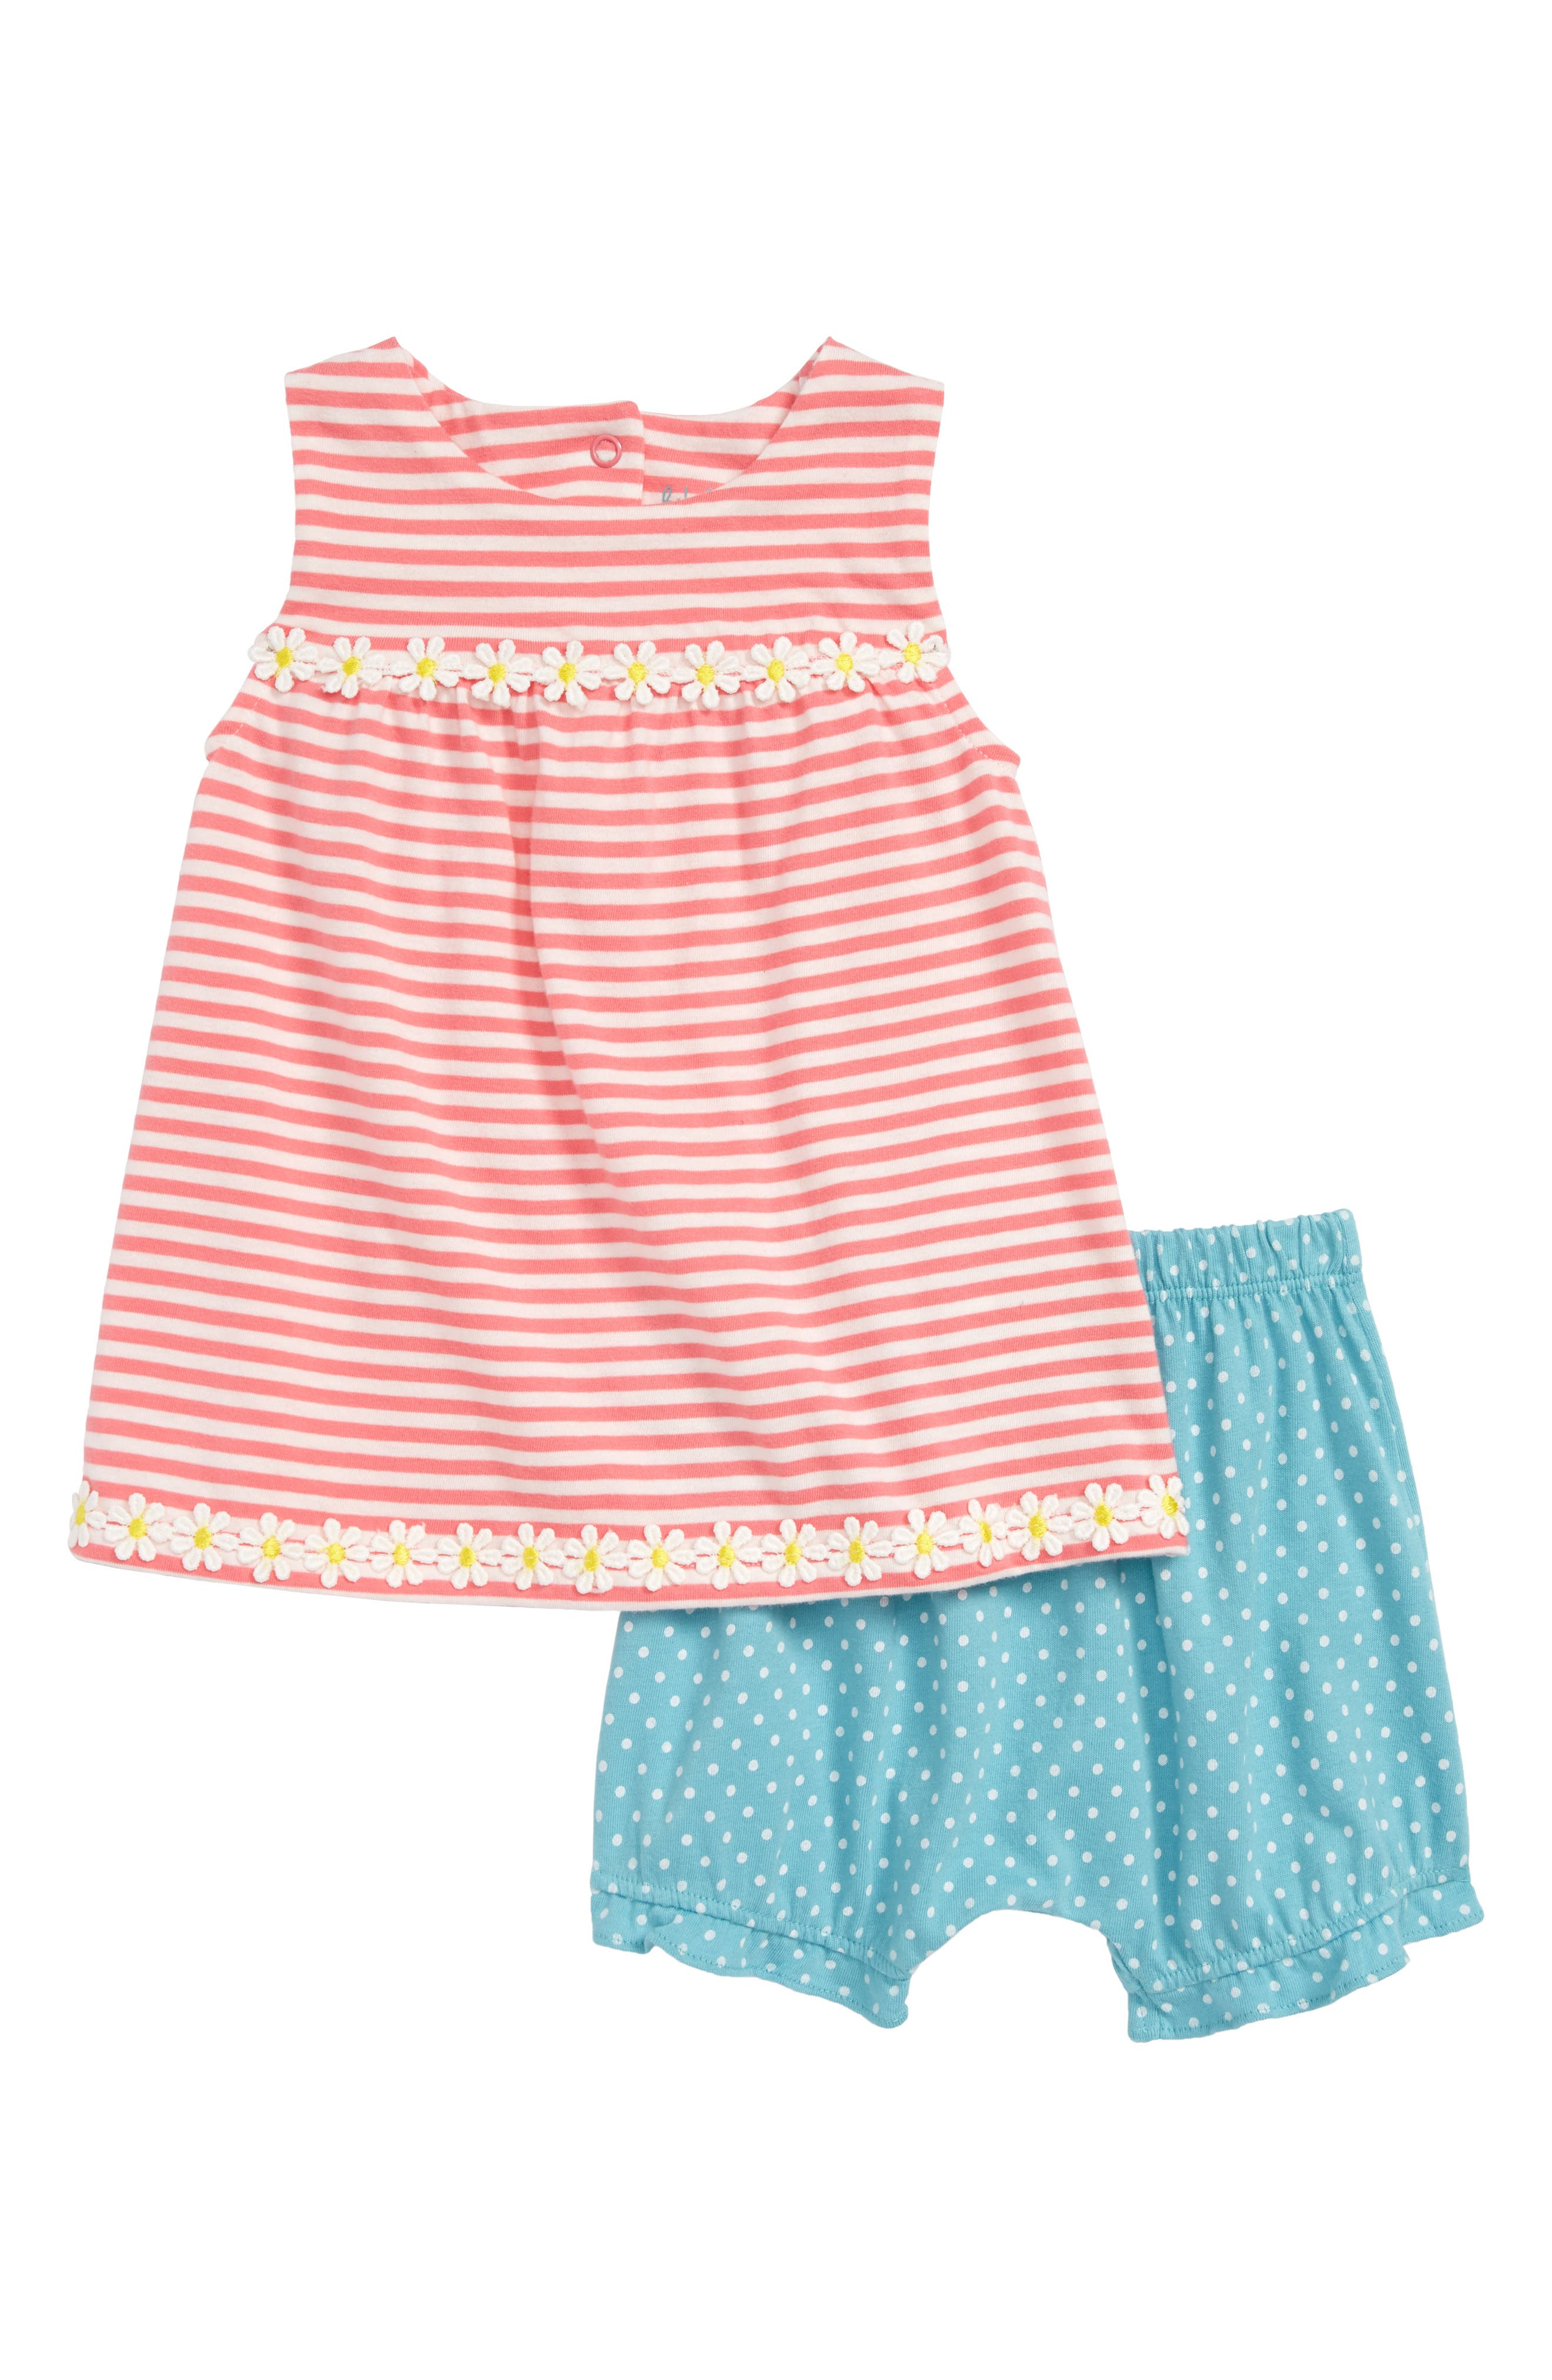 Jersey Summer Dress,                             Main thumbnail 1, color,                             Strawberry Sorbet Pink/ Ivory